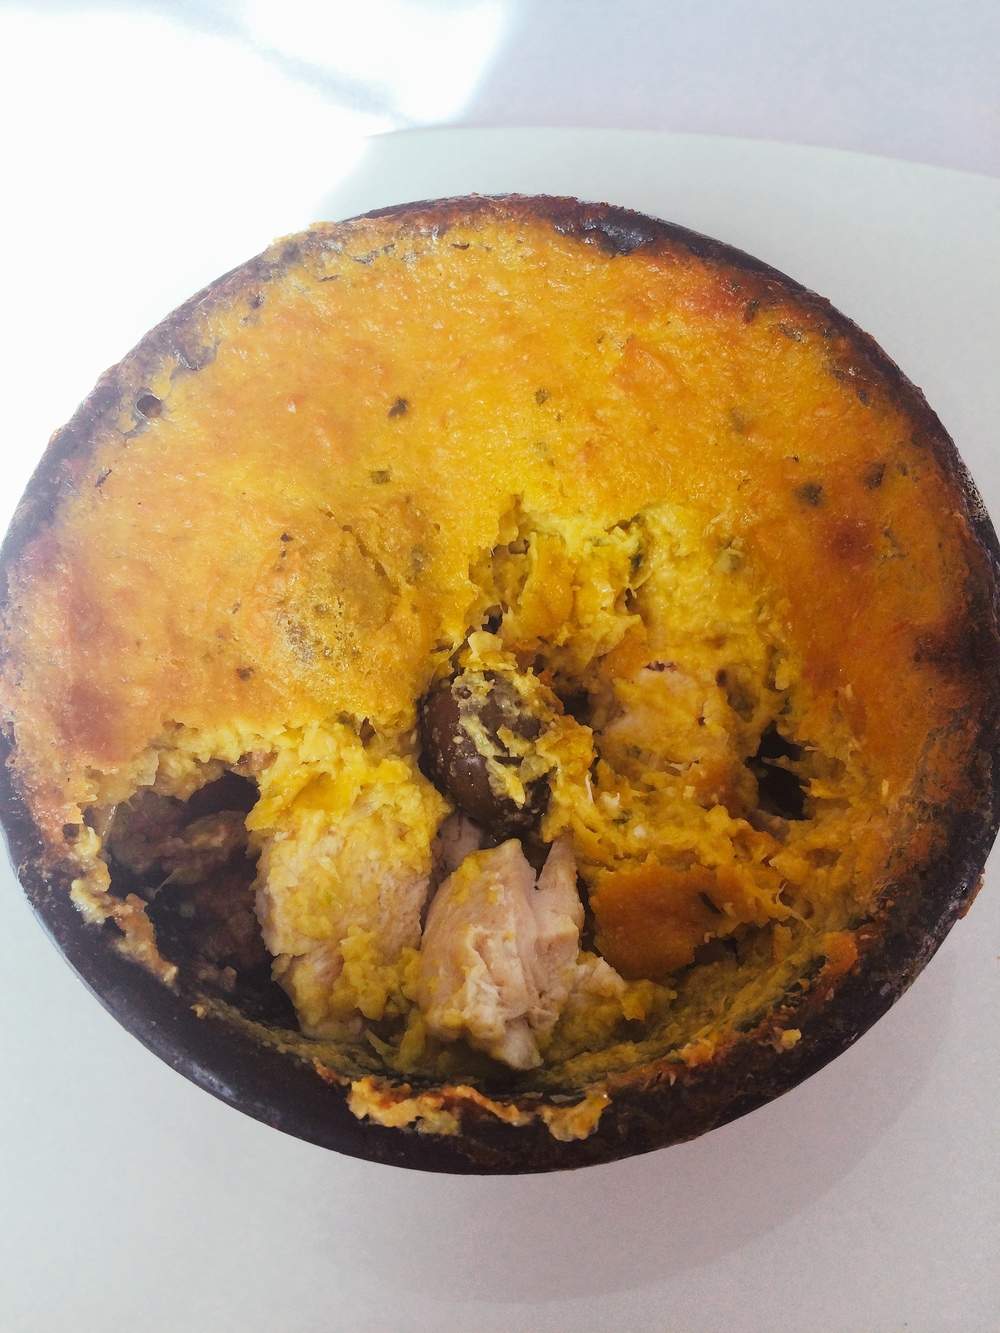 and The delicious result -pastel de choclo